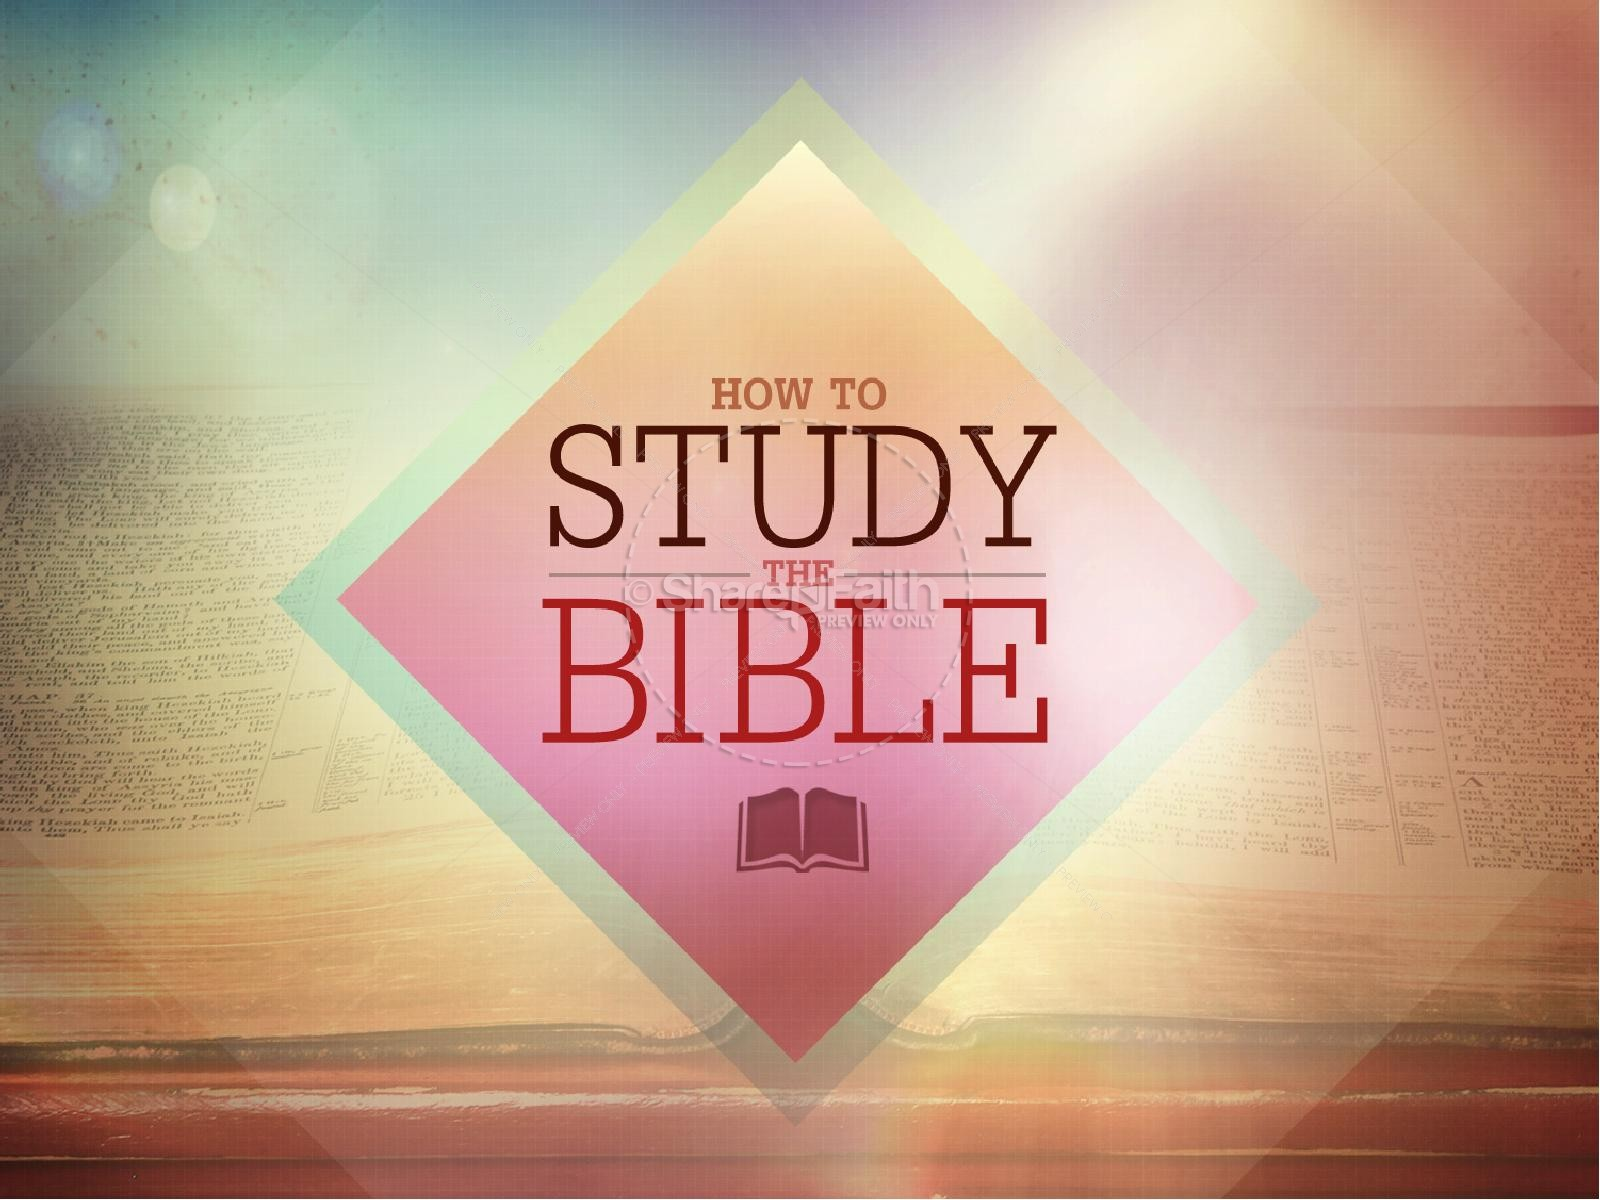 How to Study the Bible Power Point Template